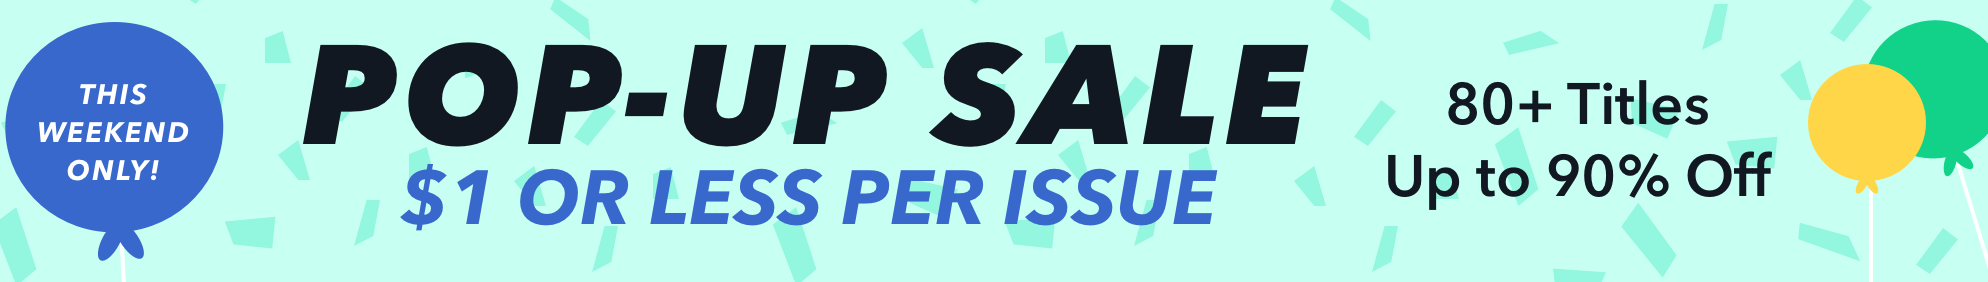 All Issues $1 or Less Oct 18 Aff